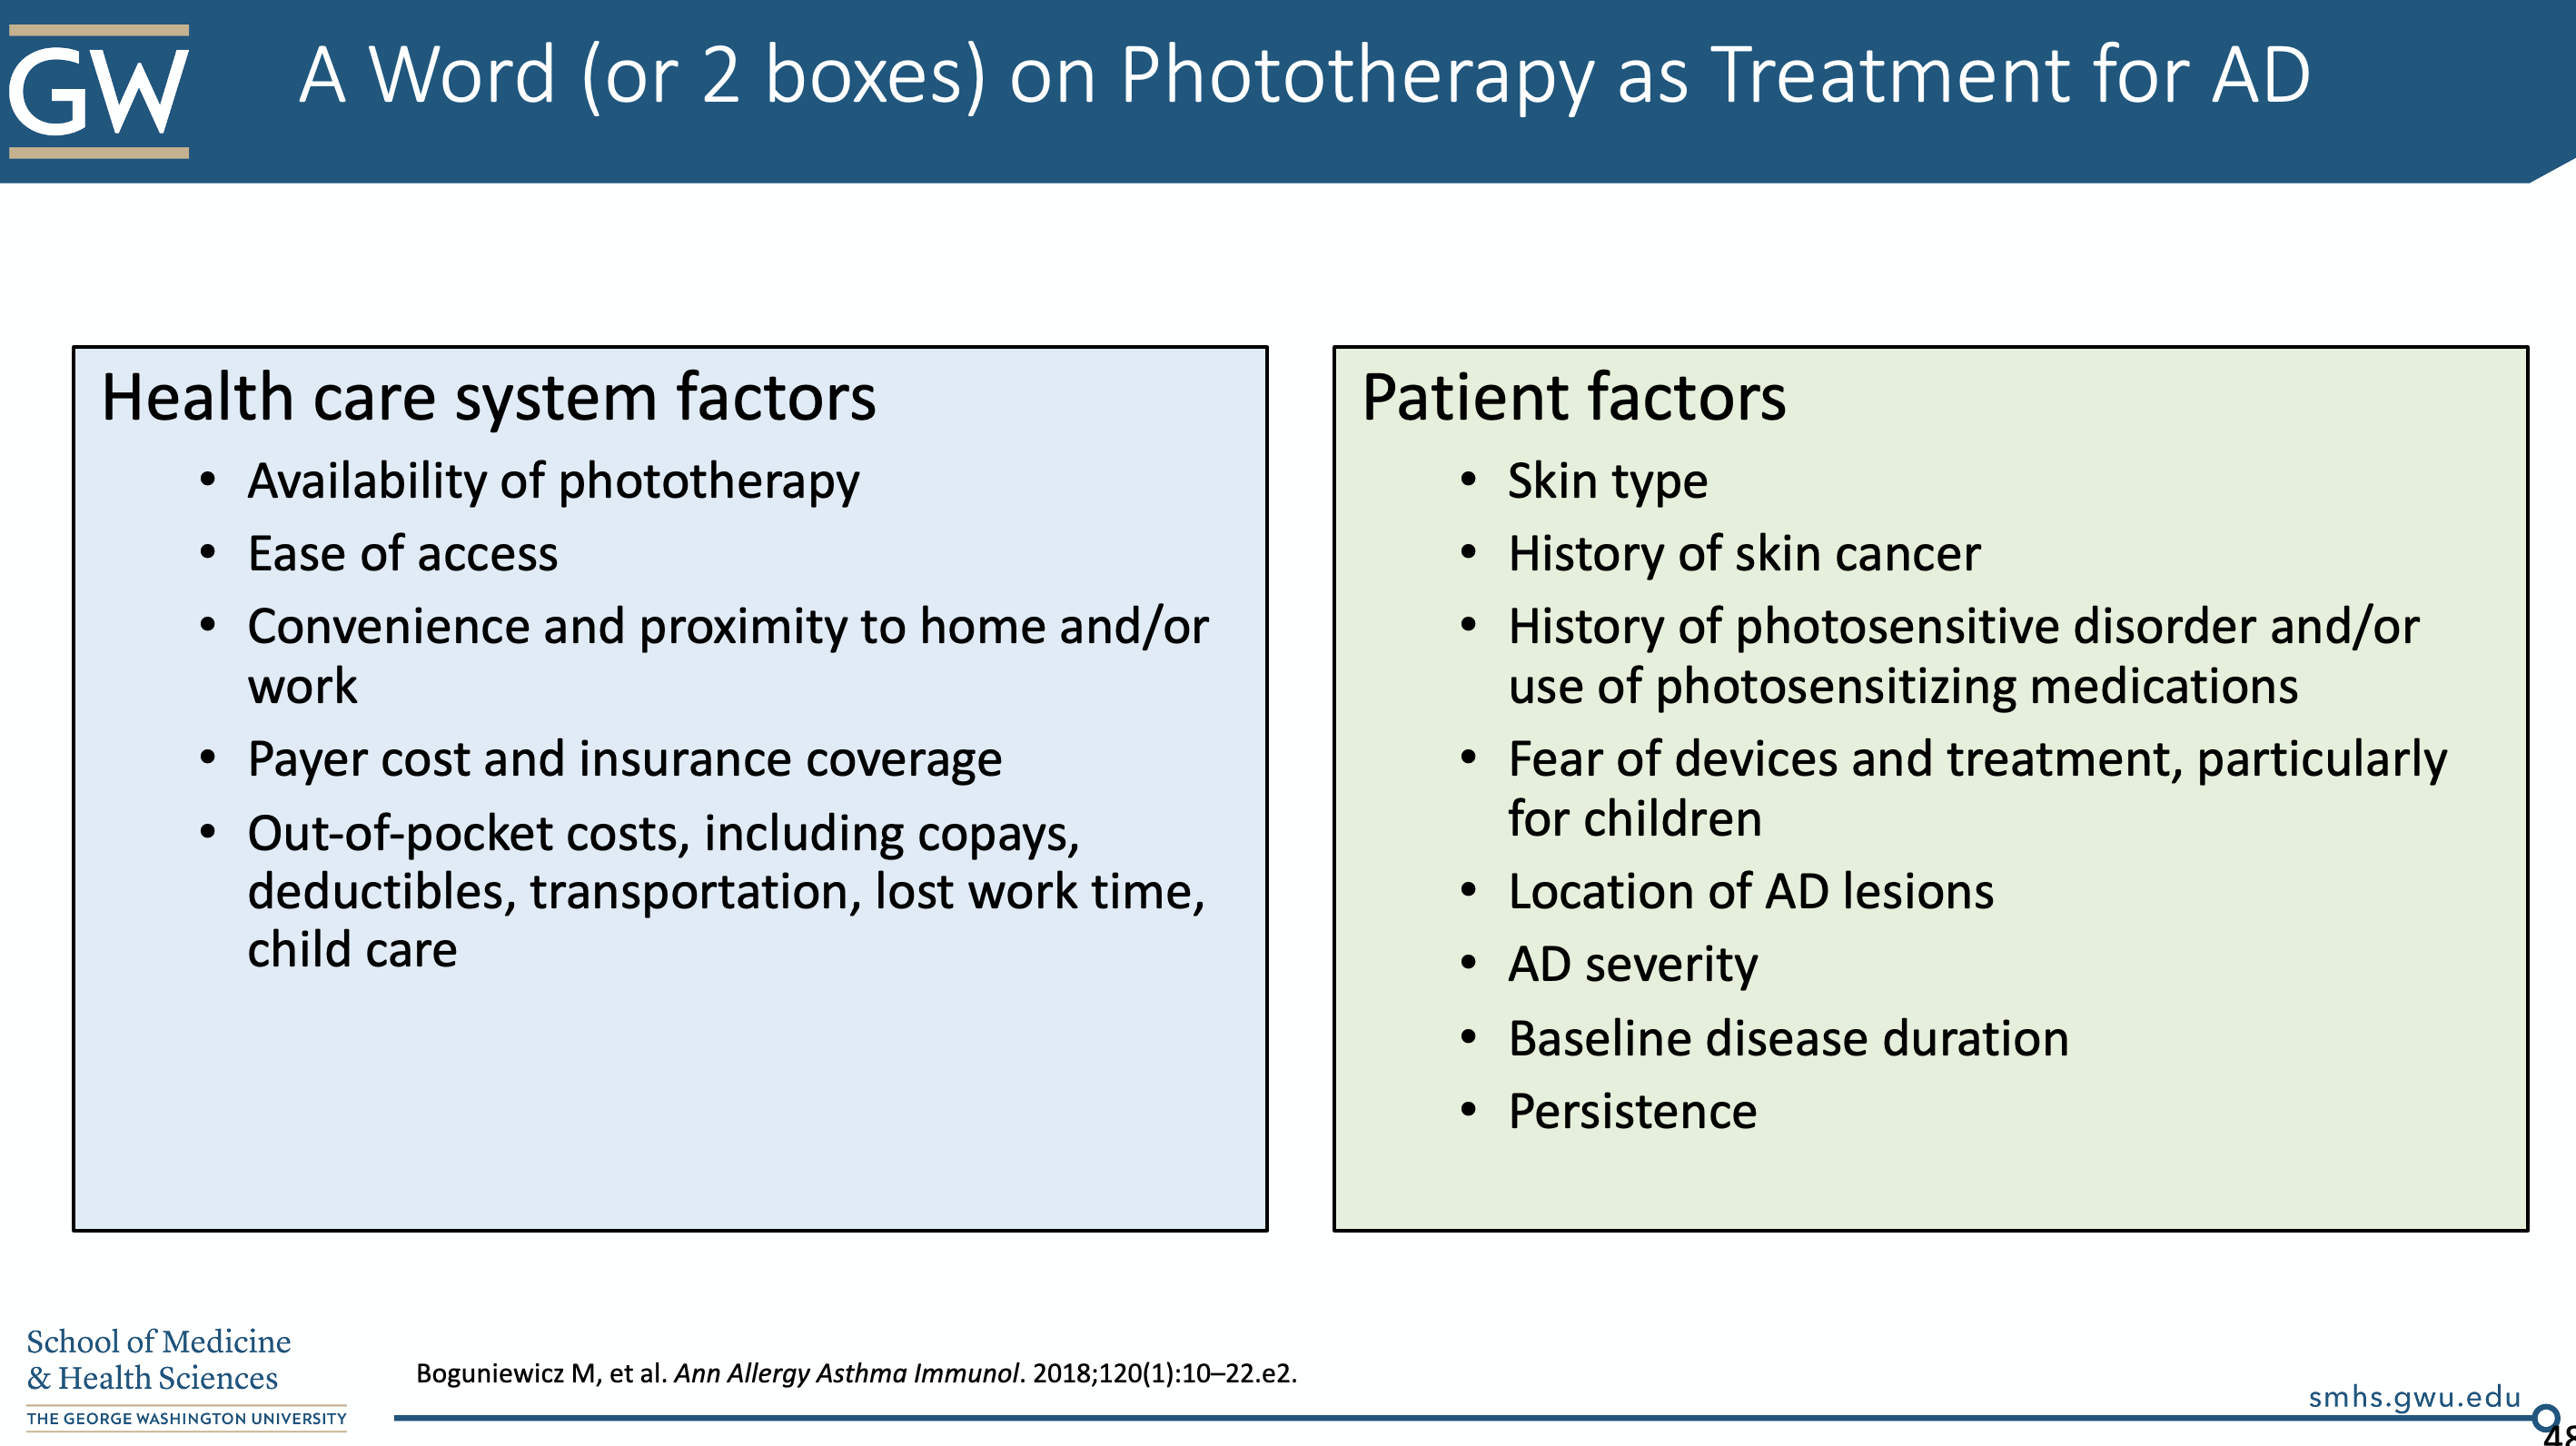 Phototherapy as Treatment for Atopic Dermatitis